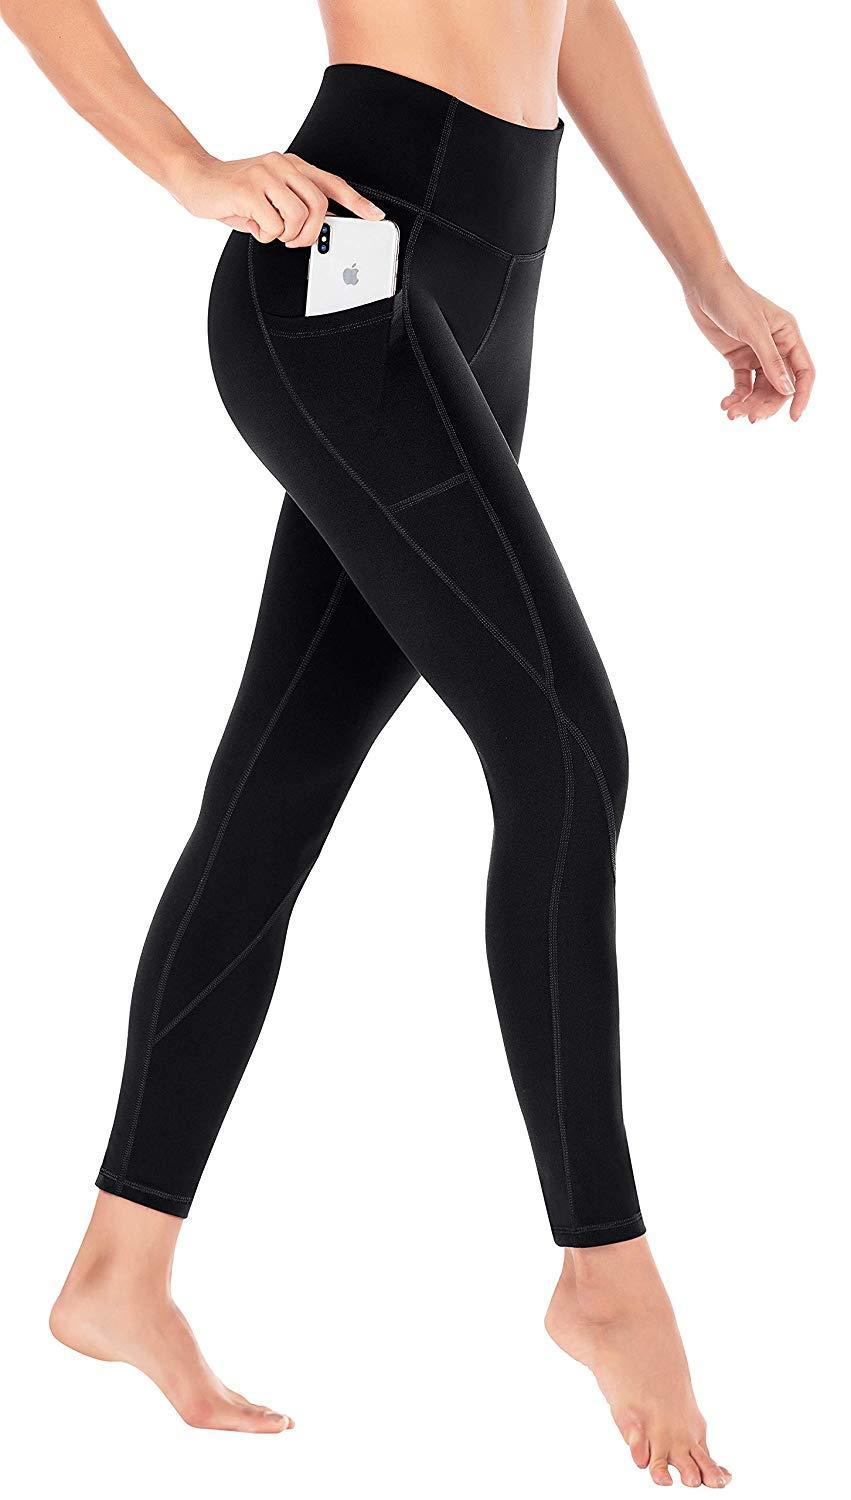 "<h3><a href=""https://www.amazon.com/Heathyoga-Leggings-Workout-Running-See-Through/dp/B07DKC92D3/ref=sr_1_10"" rel=""nofollow noopener"" target=""_blank"" data-ylk=""slk:Heathyoga Yoga Pants With Pockets"" class=""link rapid-noclick-resp"">Heathyoga Yoga Pants With Pockets</a> </h3><br><br>4.7 out of 5 stars, 7,340 reviews<br><br><strong>Promising Review: </strong>Bobbi K was effusive in her praise of these simple, easy-wearing yoga pants: ""WOW. What an incredible company. The packaging was great and secure, with a thank you note for the purchase. The leggings are hands down, the best leggings I've ever owned. I want to throw out all of my other pairs, and buy every color of these. I would love to see these in some cool patterns and prints. The quality of this product is 10/10, not to mention the price. The fit was spot on. I'm 5' 4"" & 148 lbs and the medium fits like a glove. I am very active and these leggings have been good for lifting, running, yoga, barre, & ballet so far. These are SO soft and make your butt look awesome. I will never buy Victoria's Secret or Fabletics leggings again. Please support this business.""<br><br><br><br><strong>Heathyoga</strong> Yoga Pants with Pockets, $, available at <a href=""https://www.amazon.com/Heathyoga-Leggings-Workout-Running-See-Through/dp/B07DKC92D3/ref=sr_1_10"" rel=""nofollow noopener"" target=""_blank"" data-ylk=""slk:Amazon"" class=""link rapid-noclick-resp"">Amazon</a>"